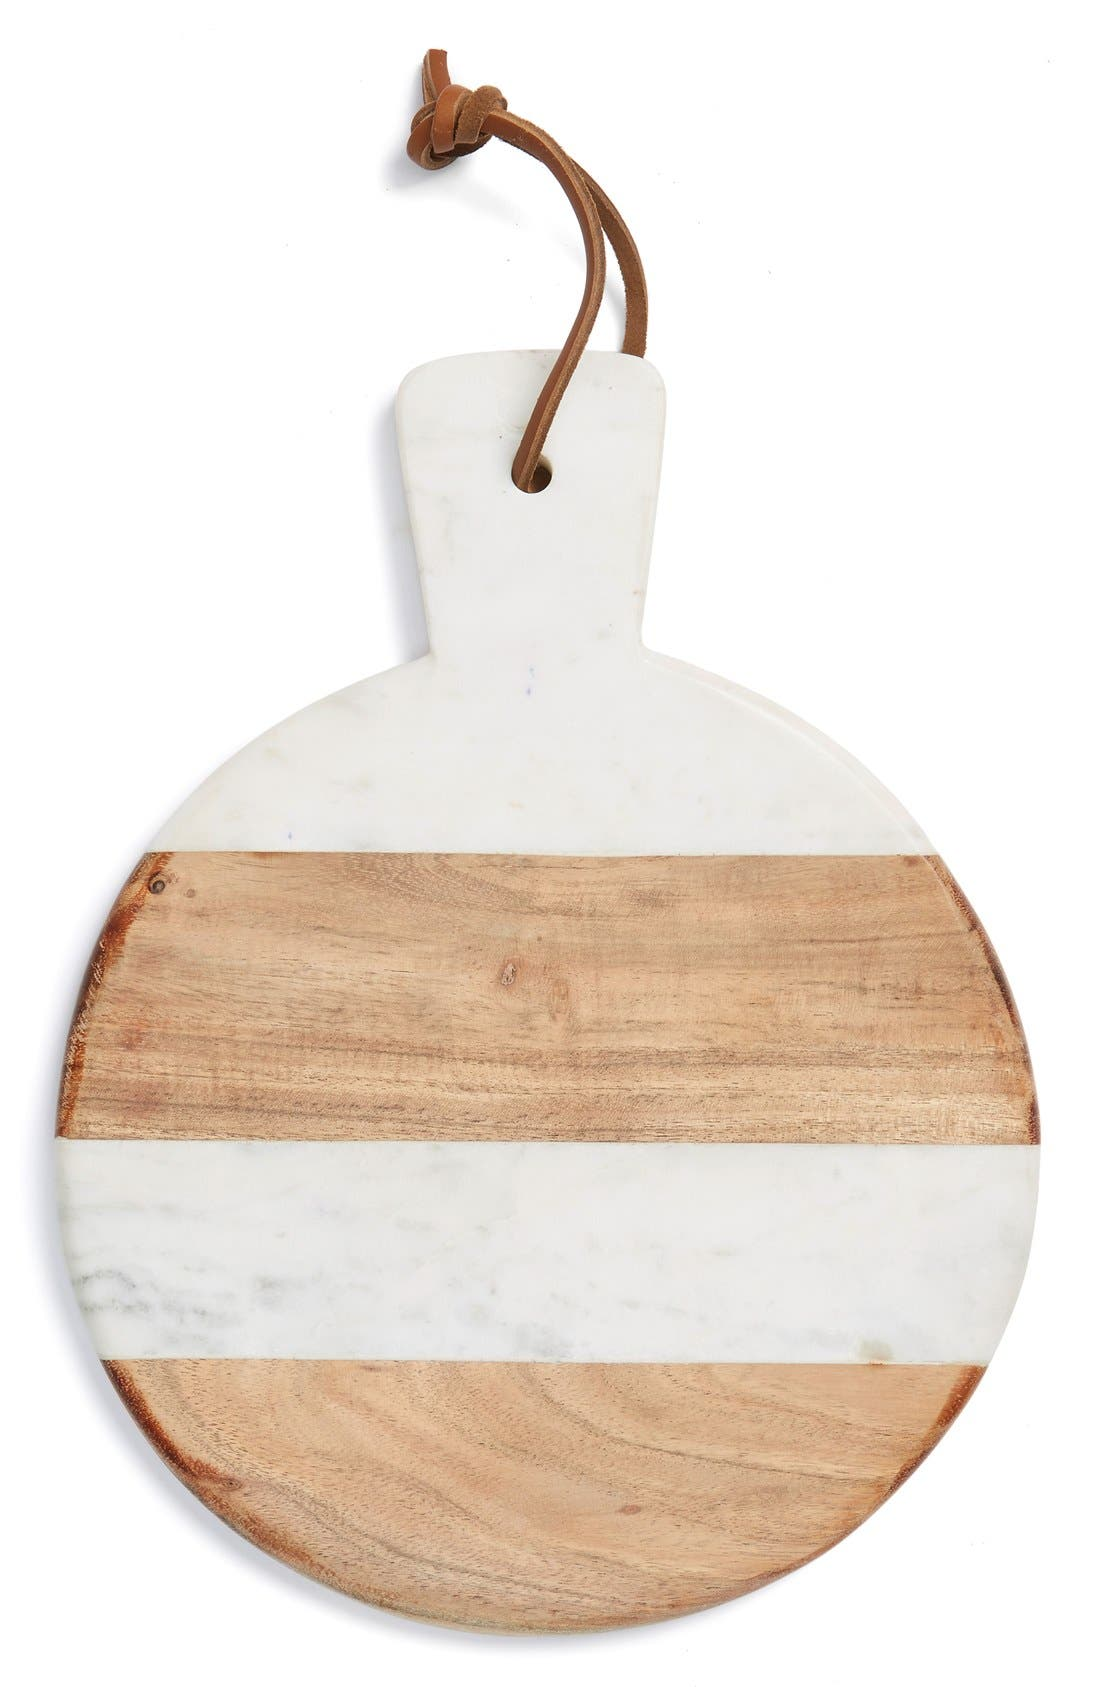 Alternate Image 1 Selected - Thirstystone Marble & Wood Paddle Serving Board